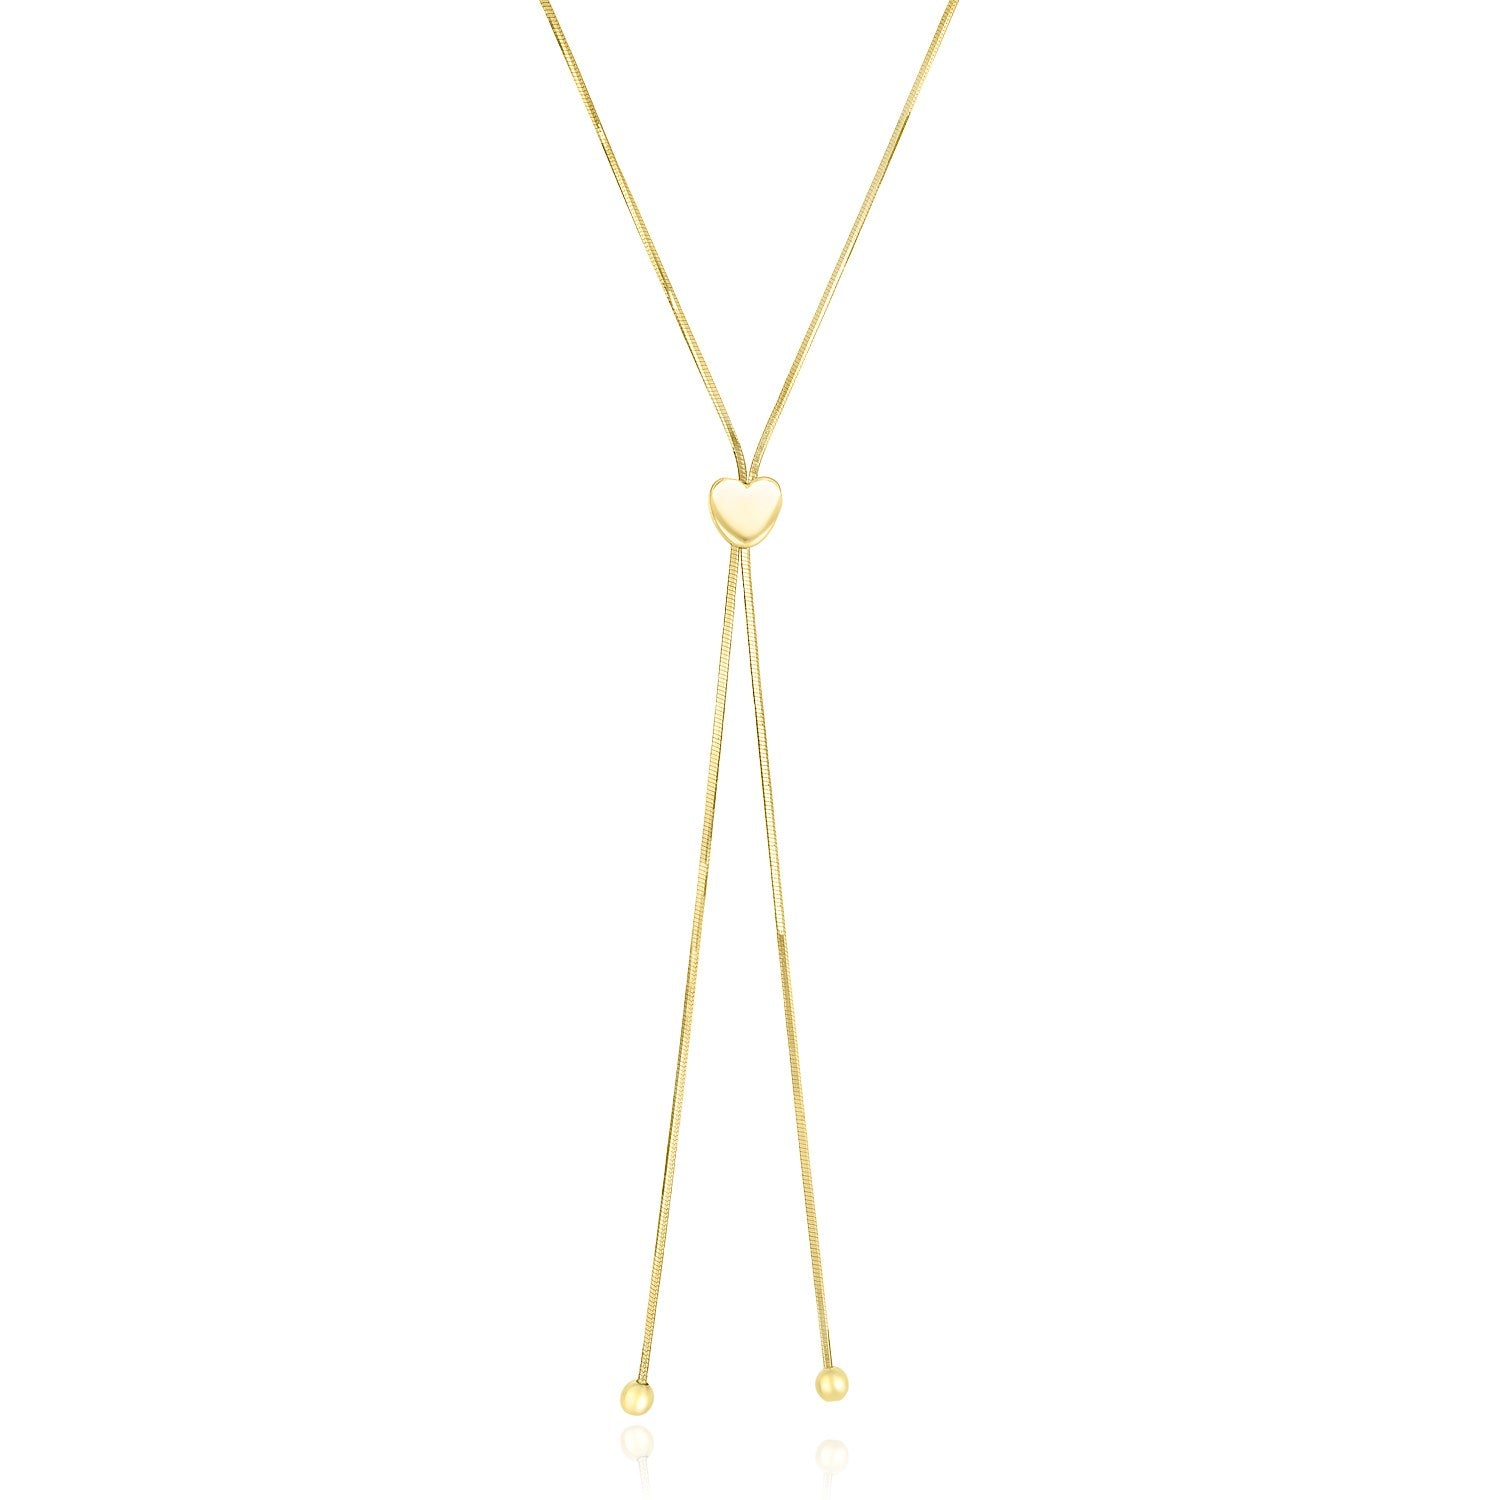 Unique Hollywood Style 14K Yellow Gold Adjustable Heart Style Lariat Necklace